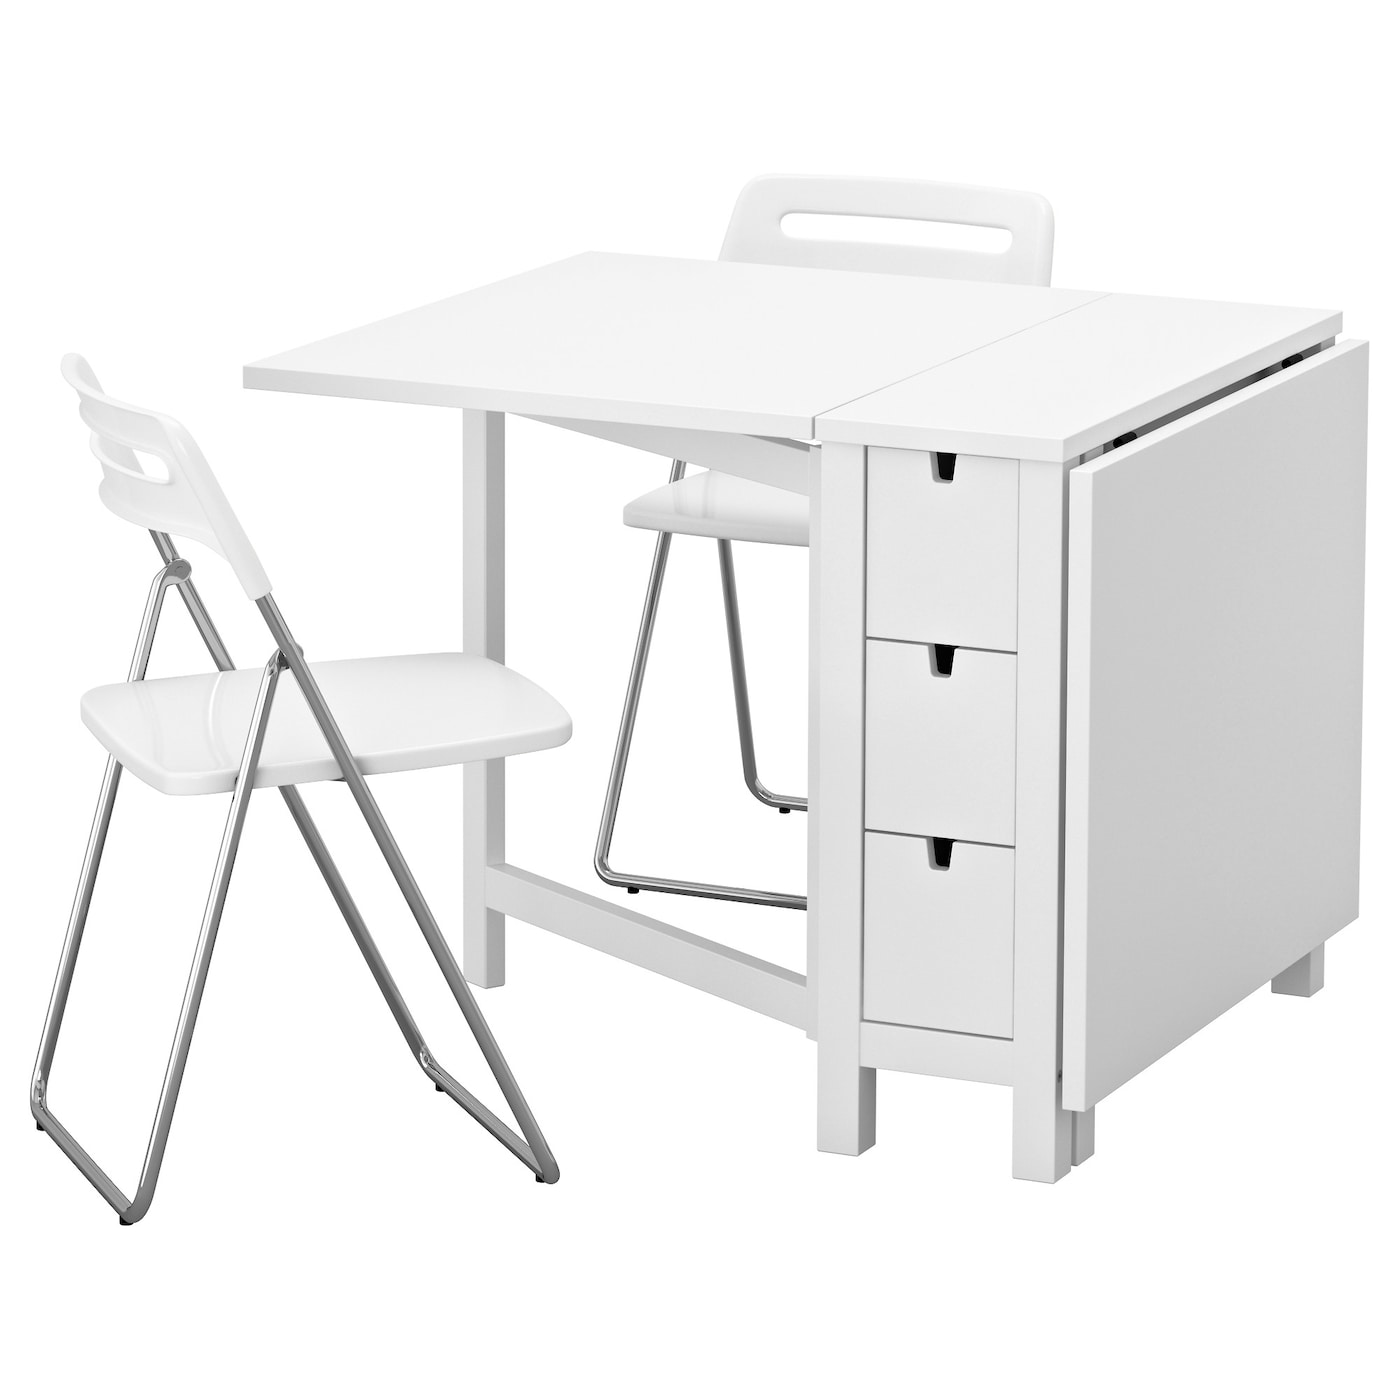 Nisse Norden Table And 2 Folding Chairs White 89 Cm Ikea